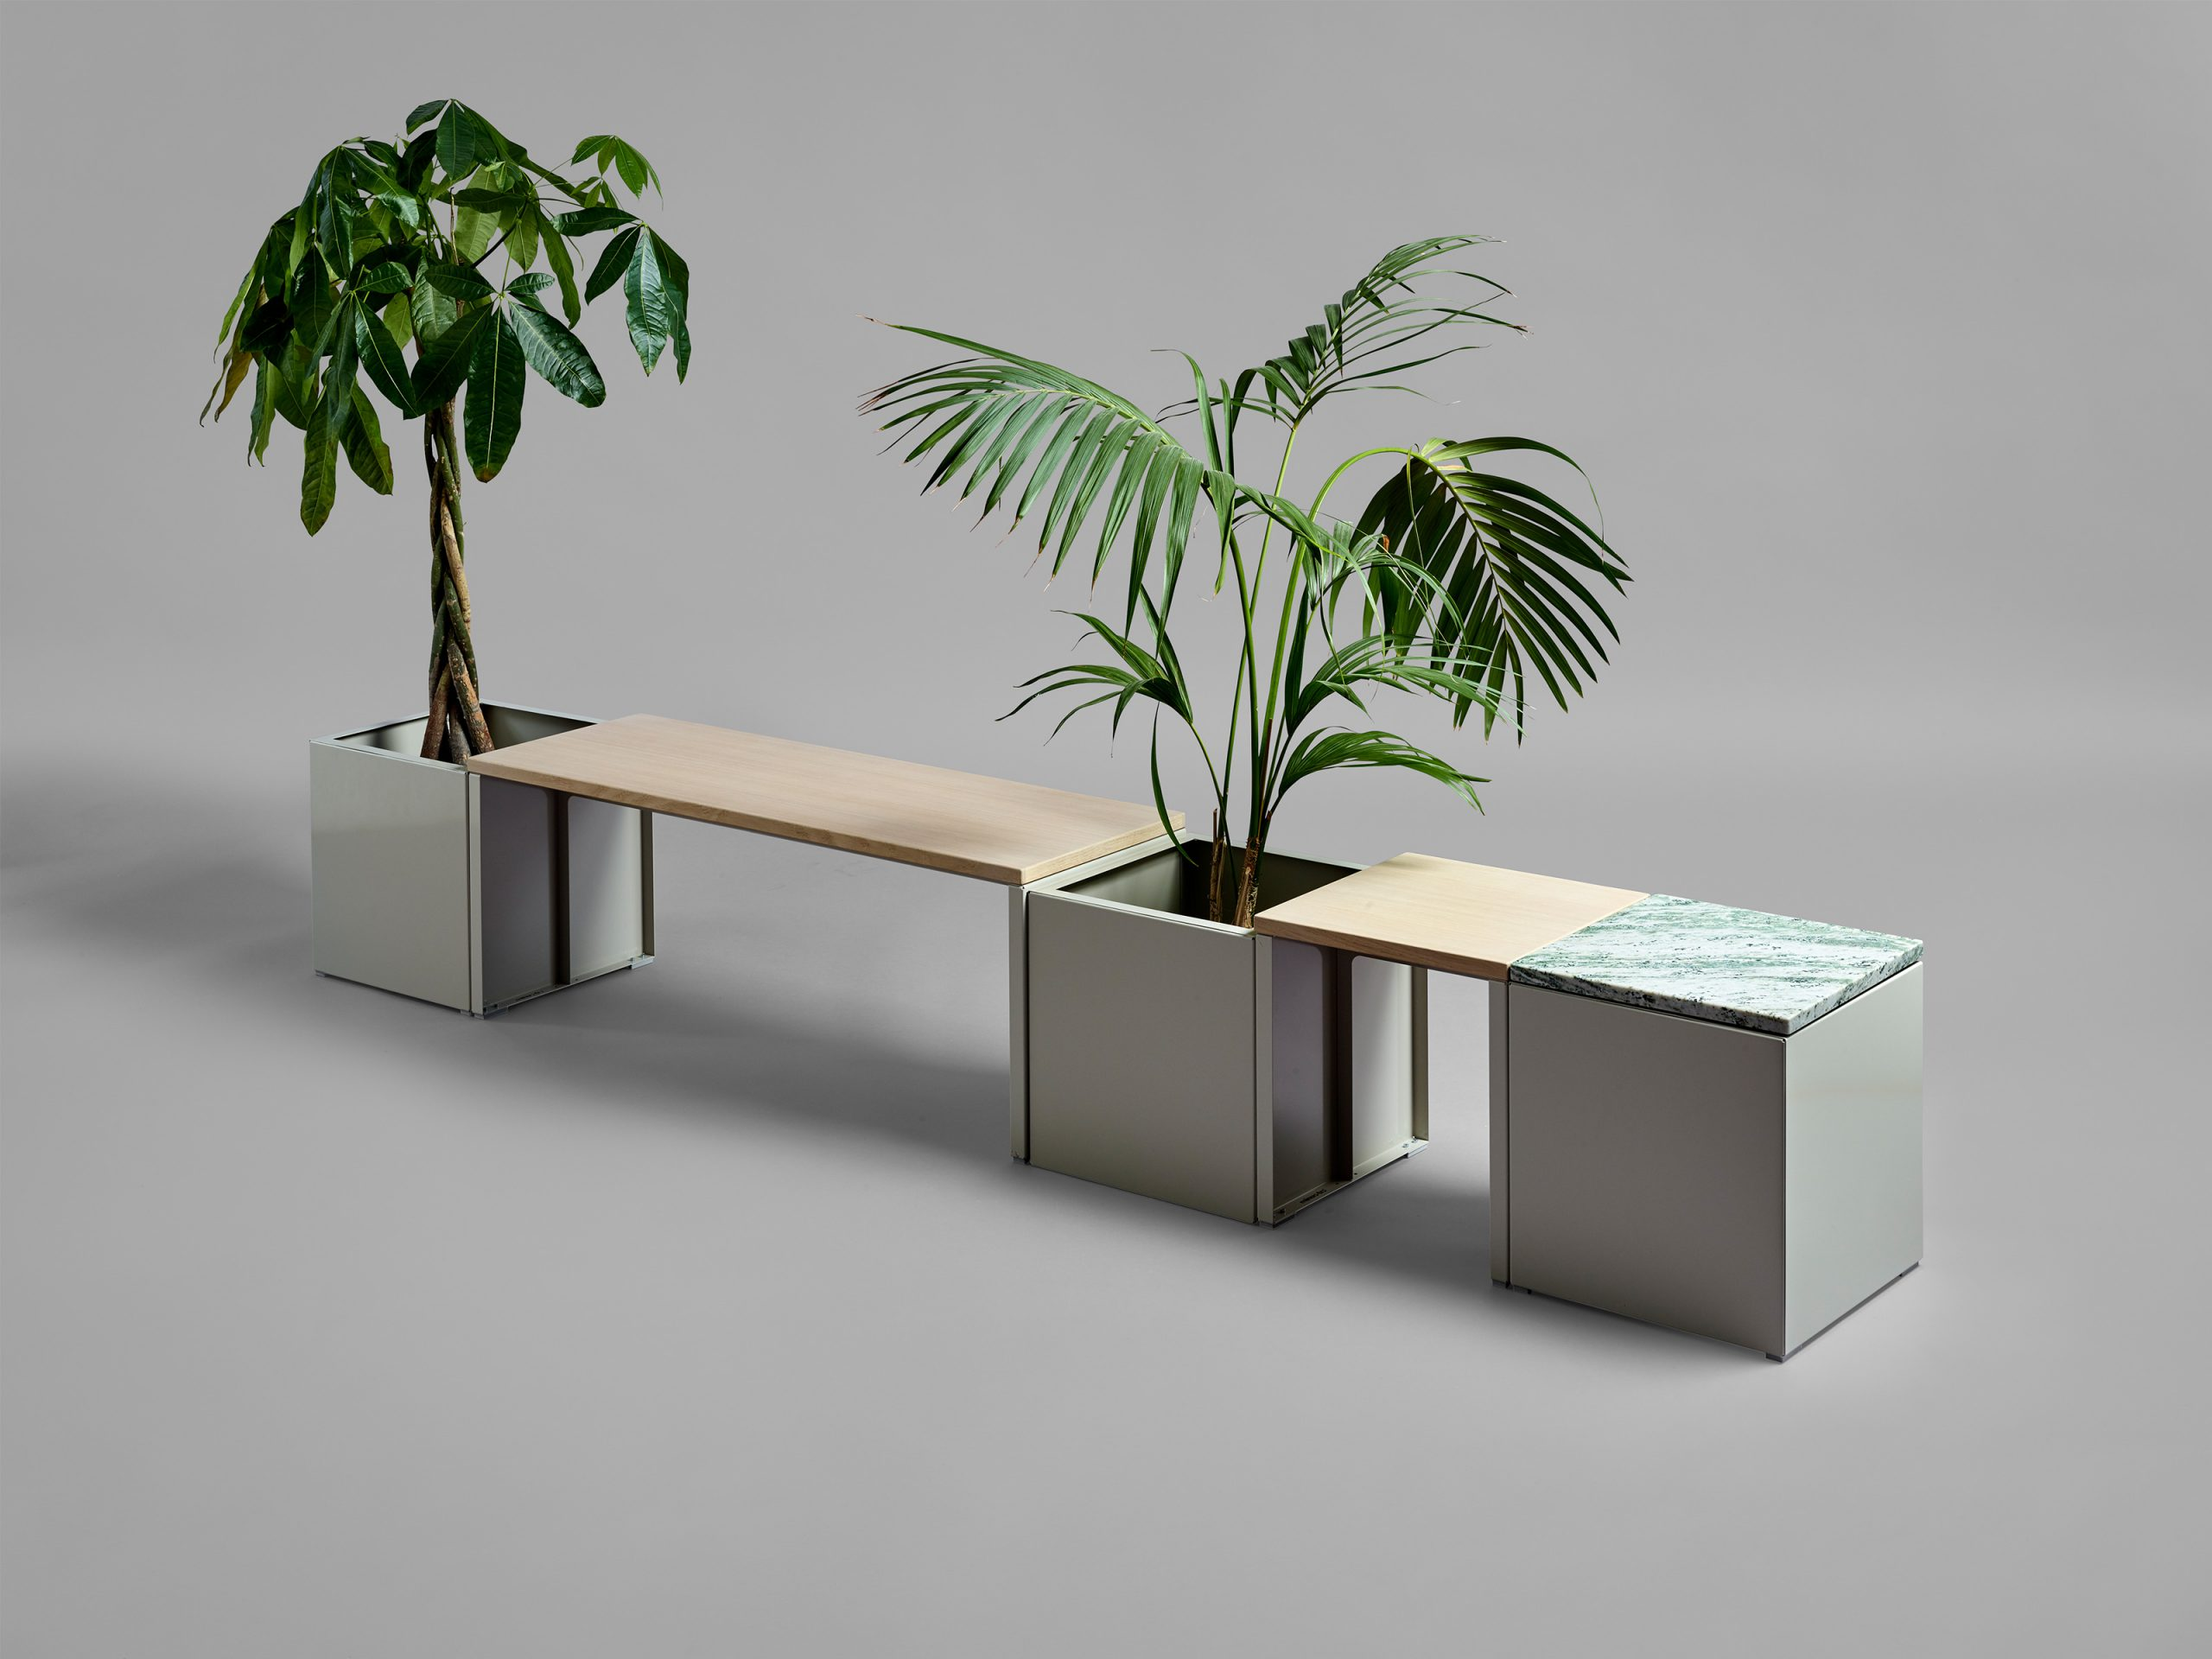 https://www.minustio.se/wp-content/uploads/2021/03/Lodger-seating-system8-scaled.jpg